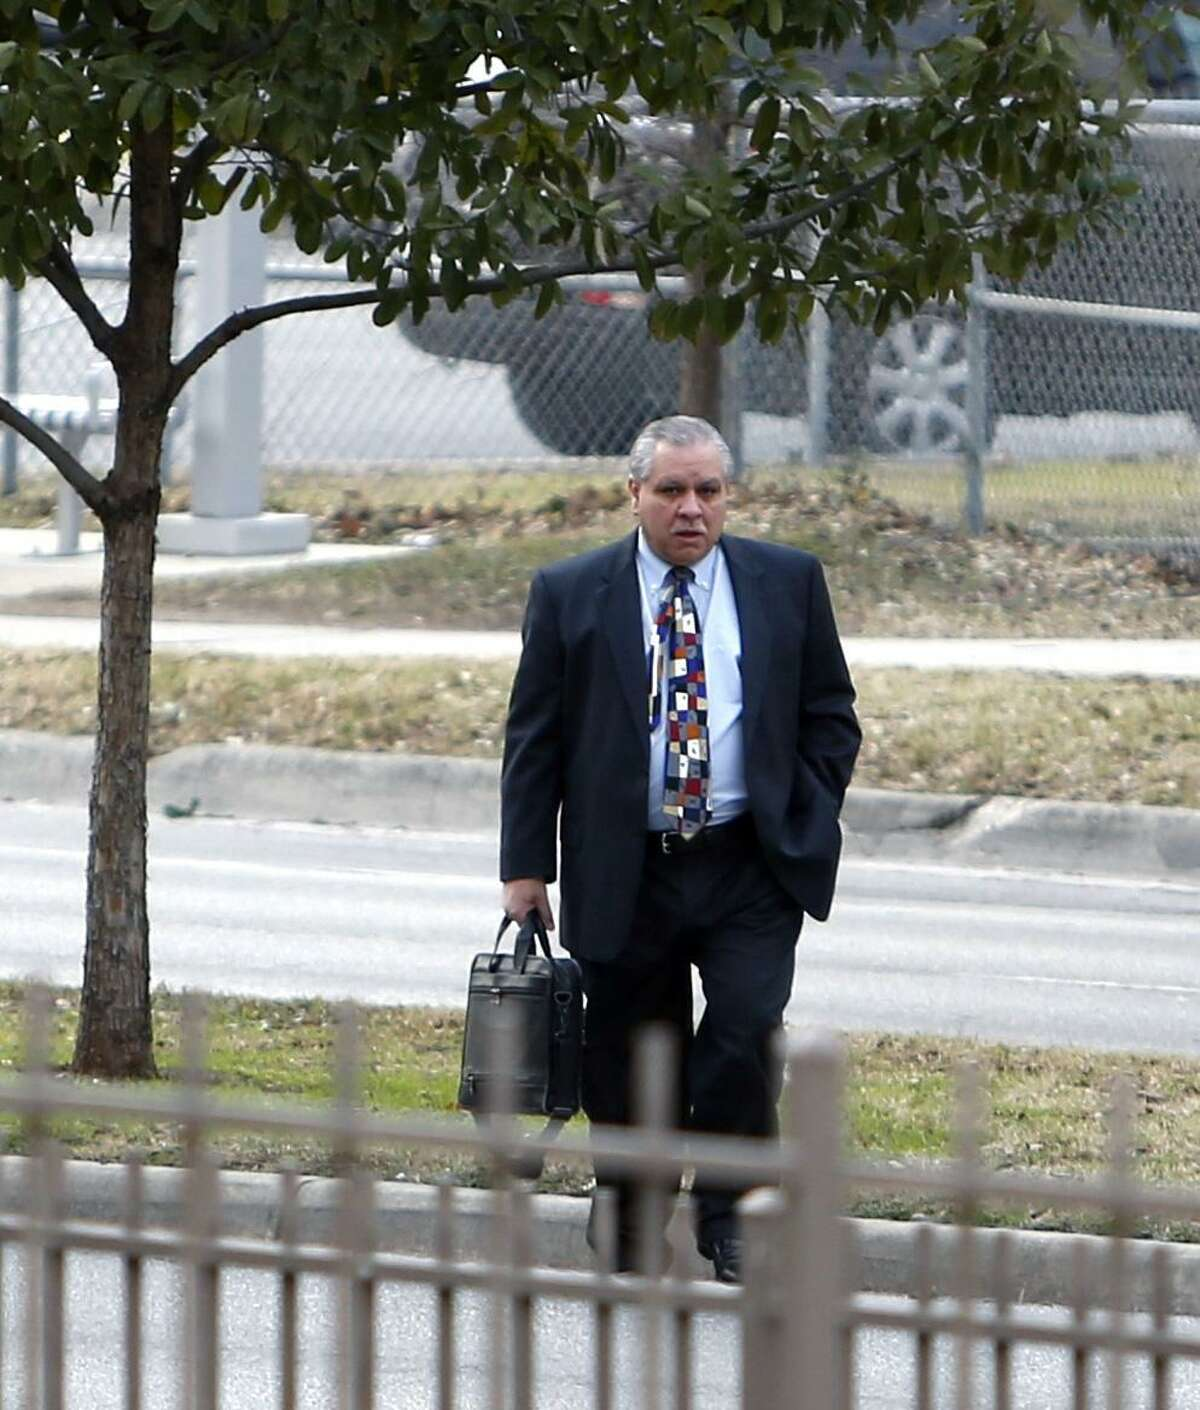 Gary Cain, state Sen. Carlos Uresti's co-defendant, faces nine felony charges, including conspiracy to commit wire fraud and conspiracy to launder money in connection with his role at now-defunct oil field services company FourWinds Logistics.